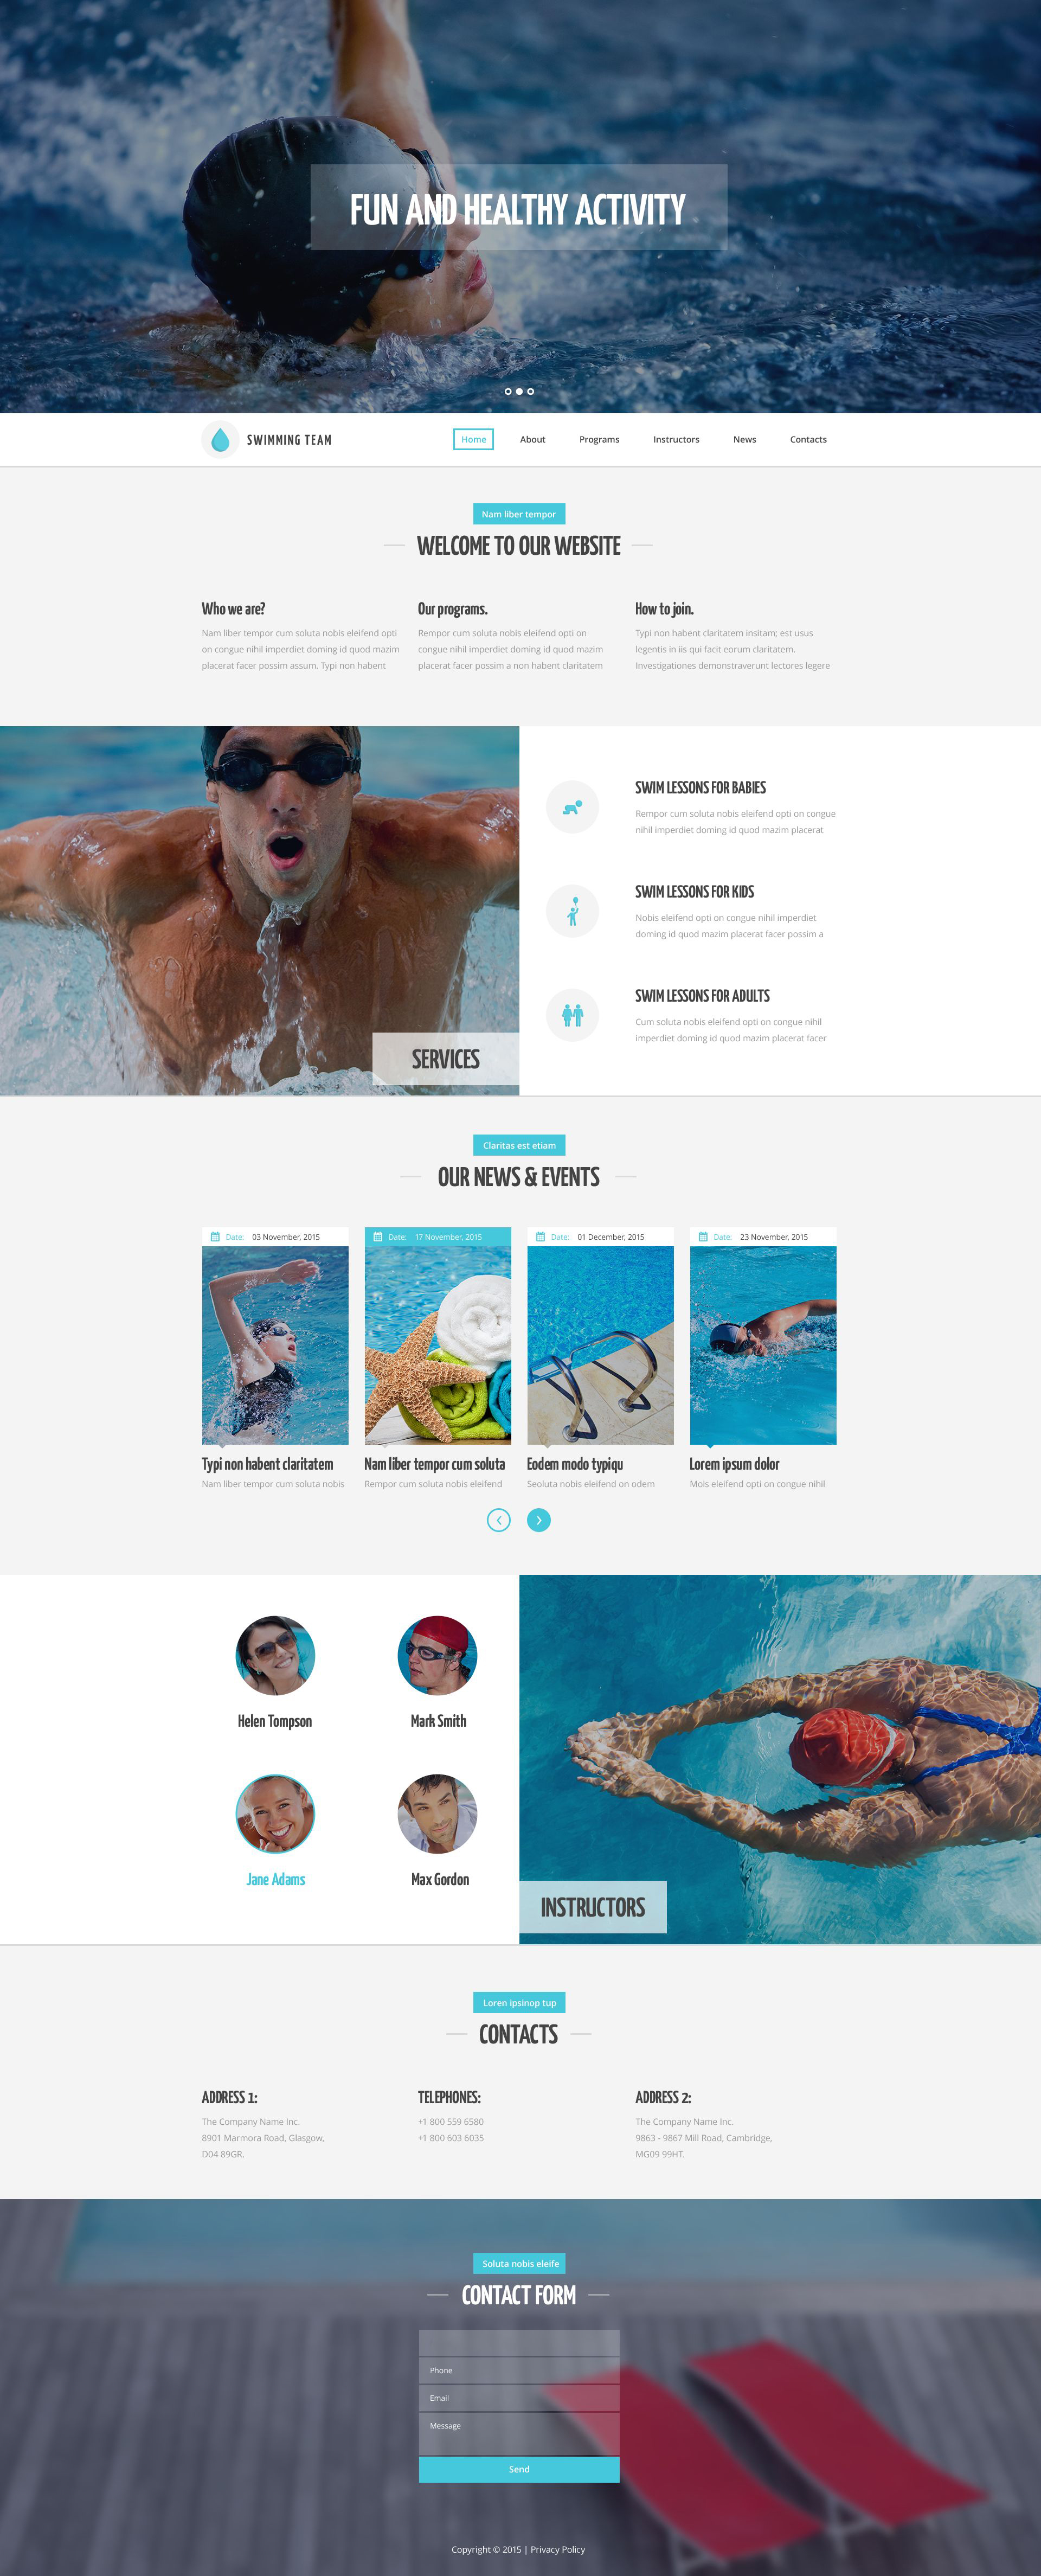 The Swim Sport School Responsive Javascript Animated Design 53446, one of the best website templates of its kind (sport, most popular), also known as swim sport school website template, swimming website template, pool website template, water website template, training website template, team website template, lessons and related with swim sport school, swimming, pool, water, training, team, lessons, etc.